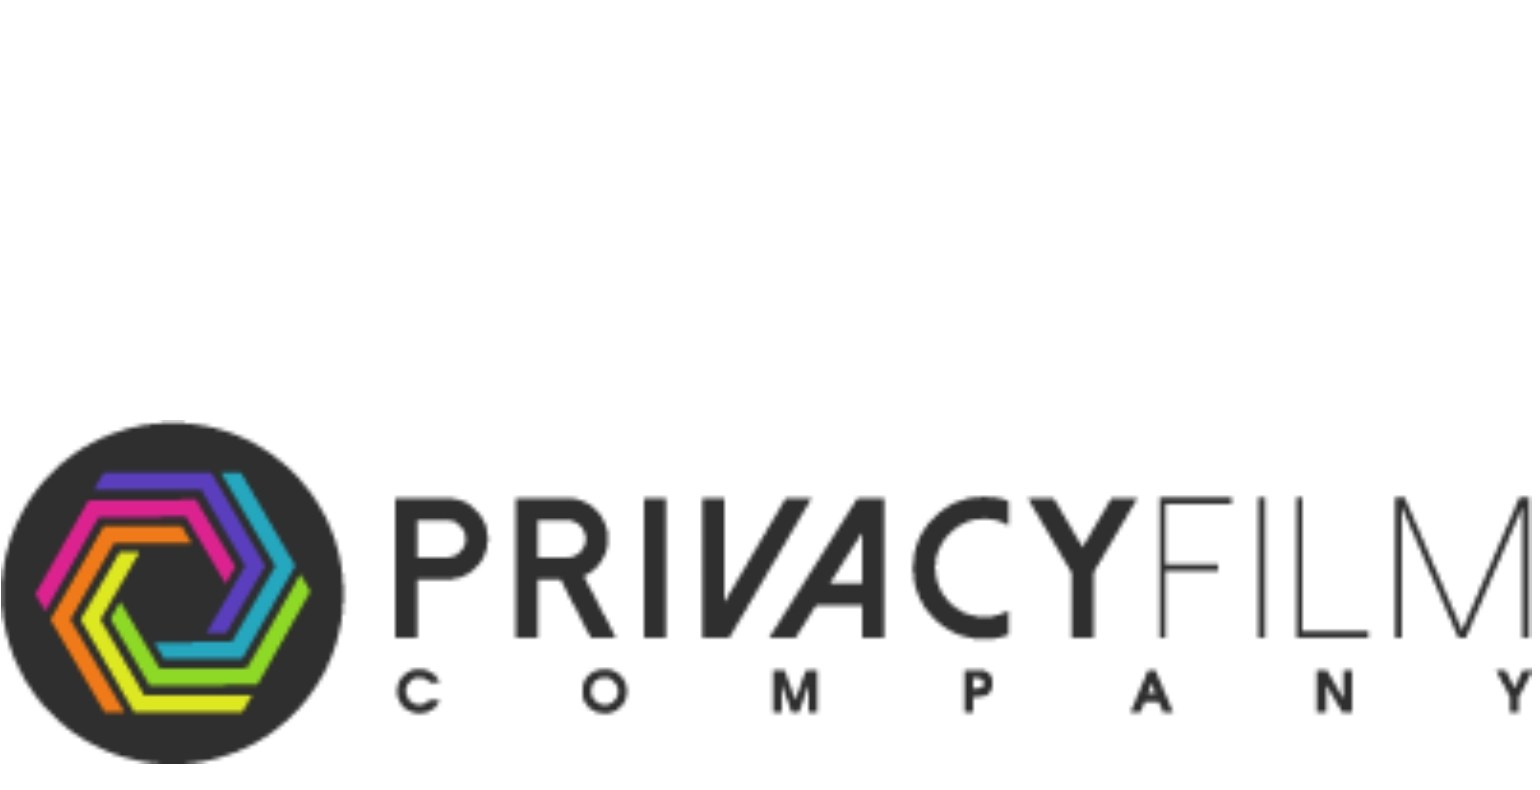 Privacy Film Company - Manufacturer & Distributor of VISIUM® Window Films